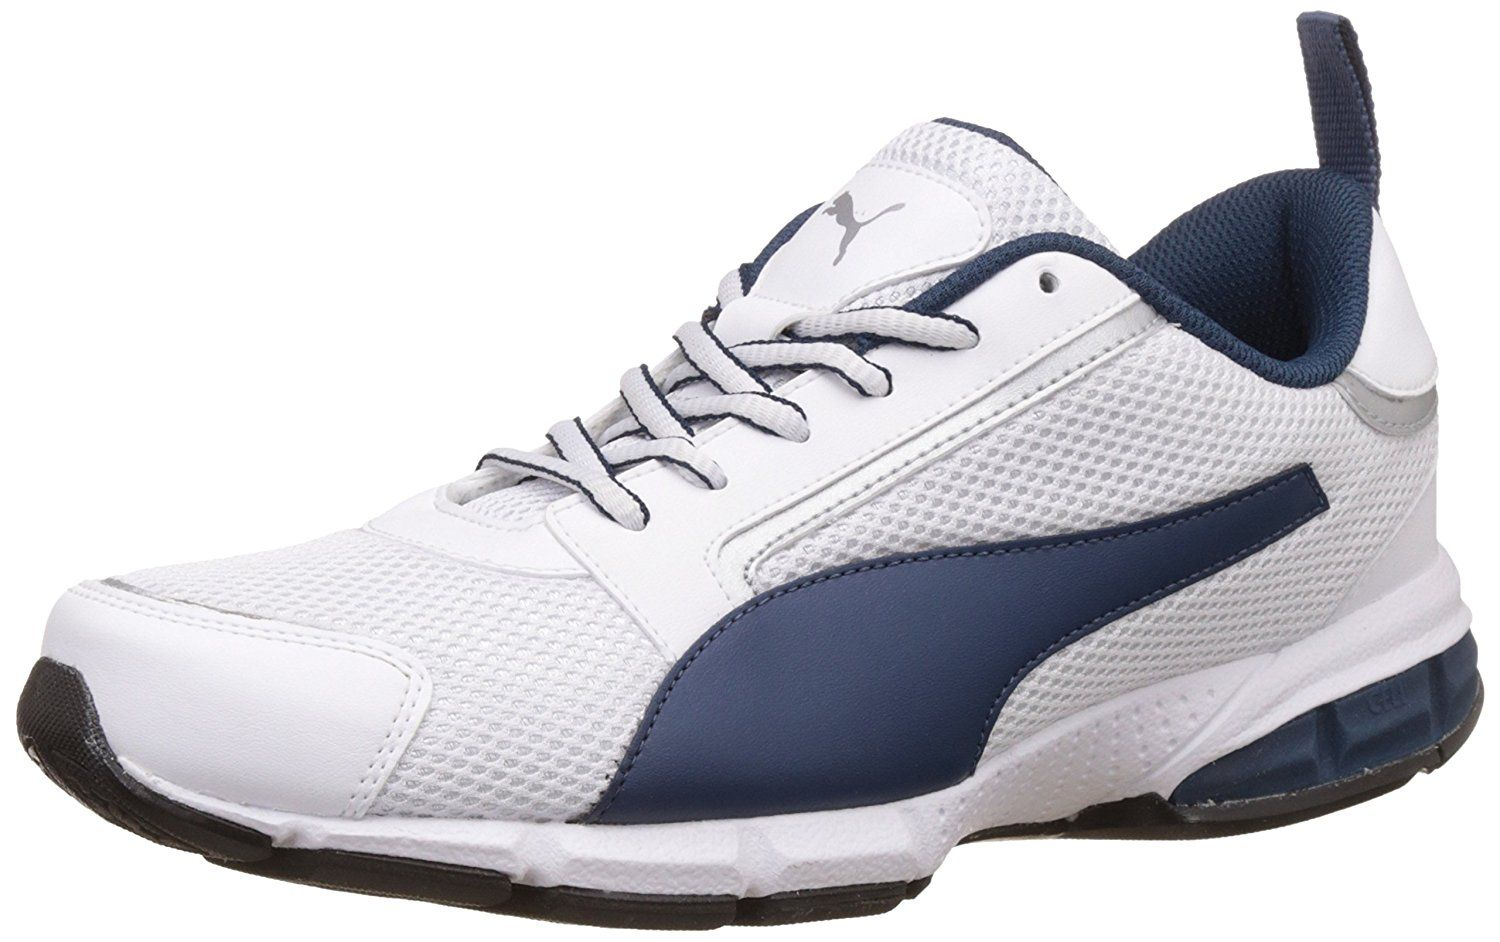 Colour Puma White Blue Wing Teal And Puma Silver Material Type